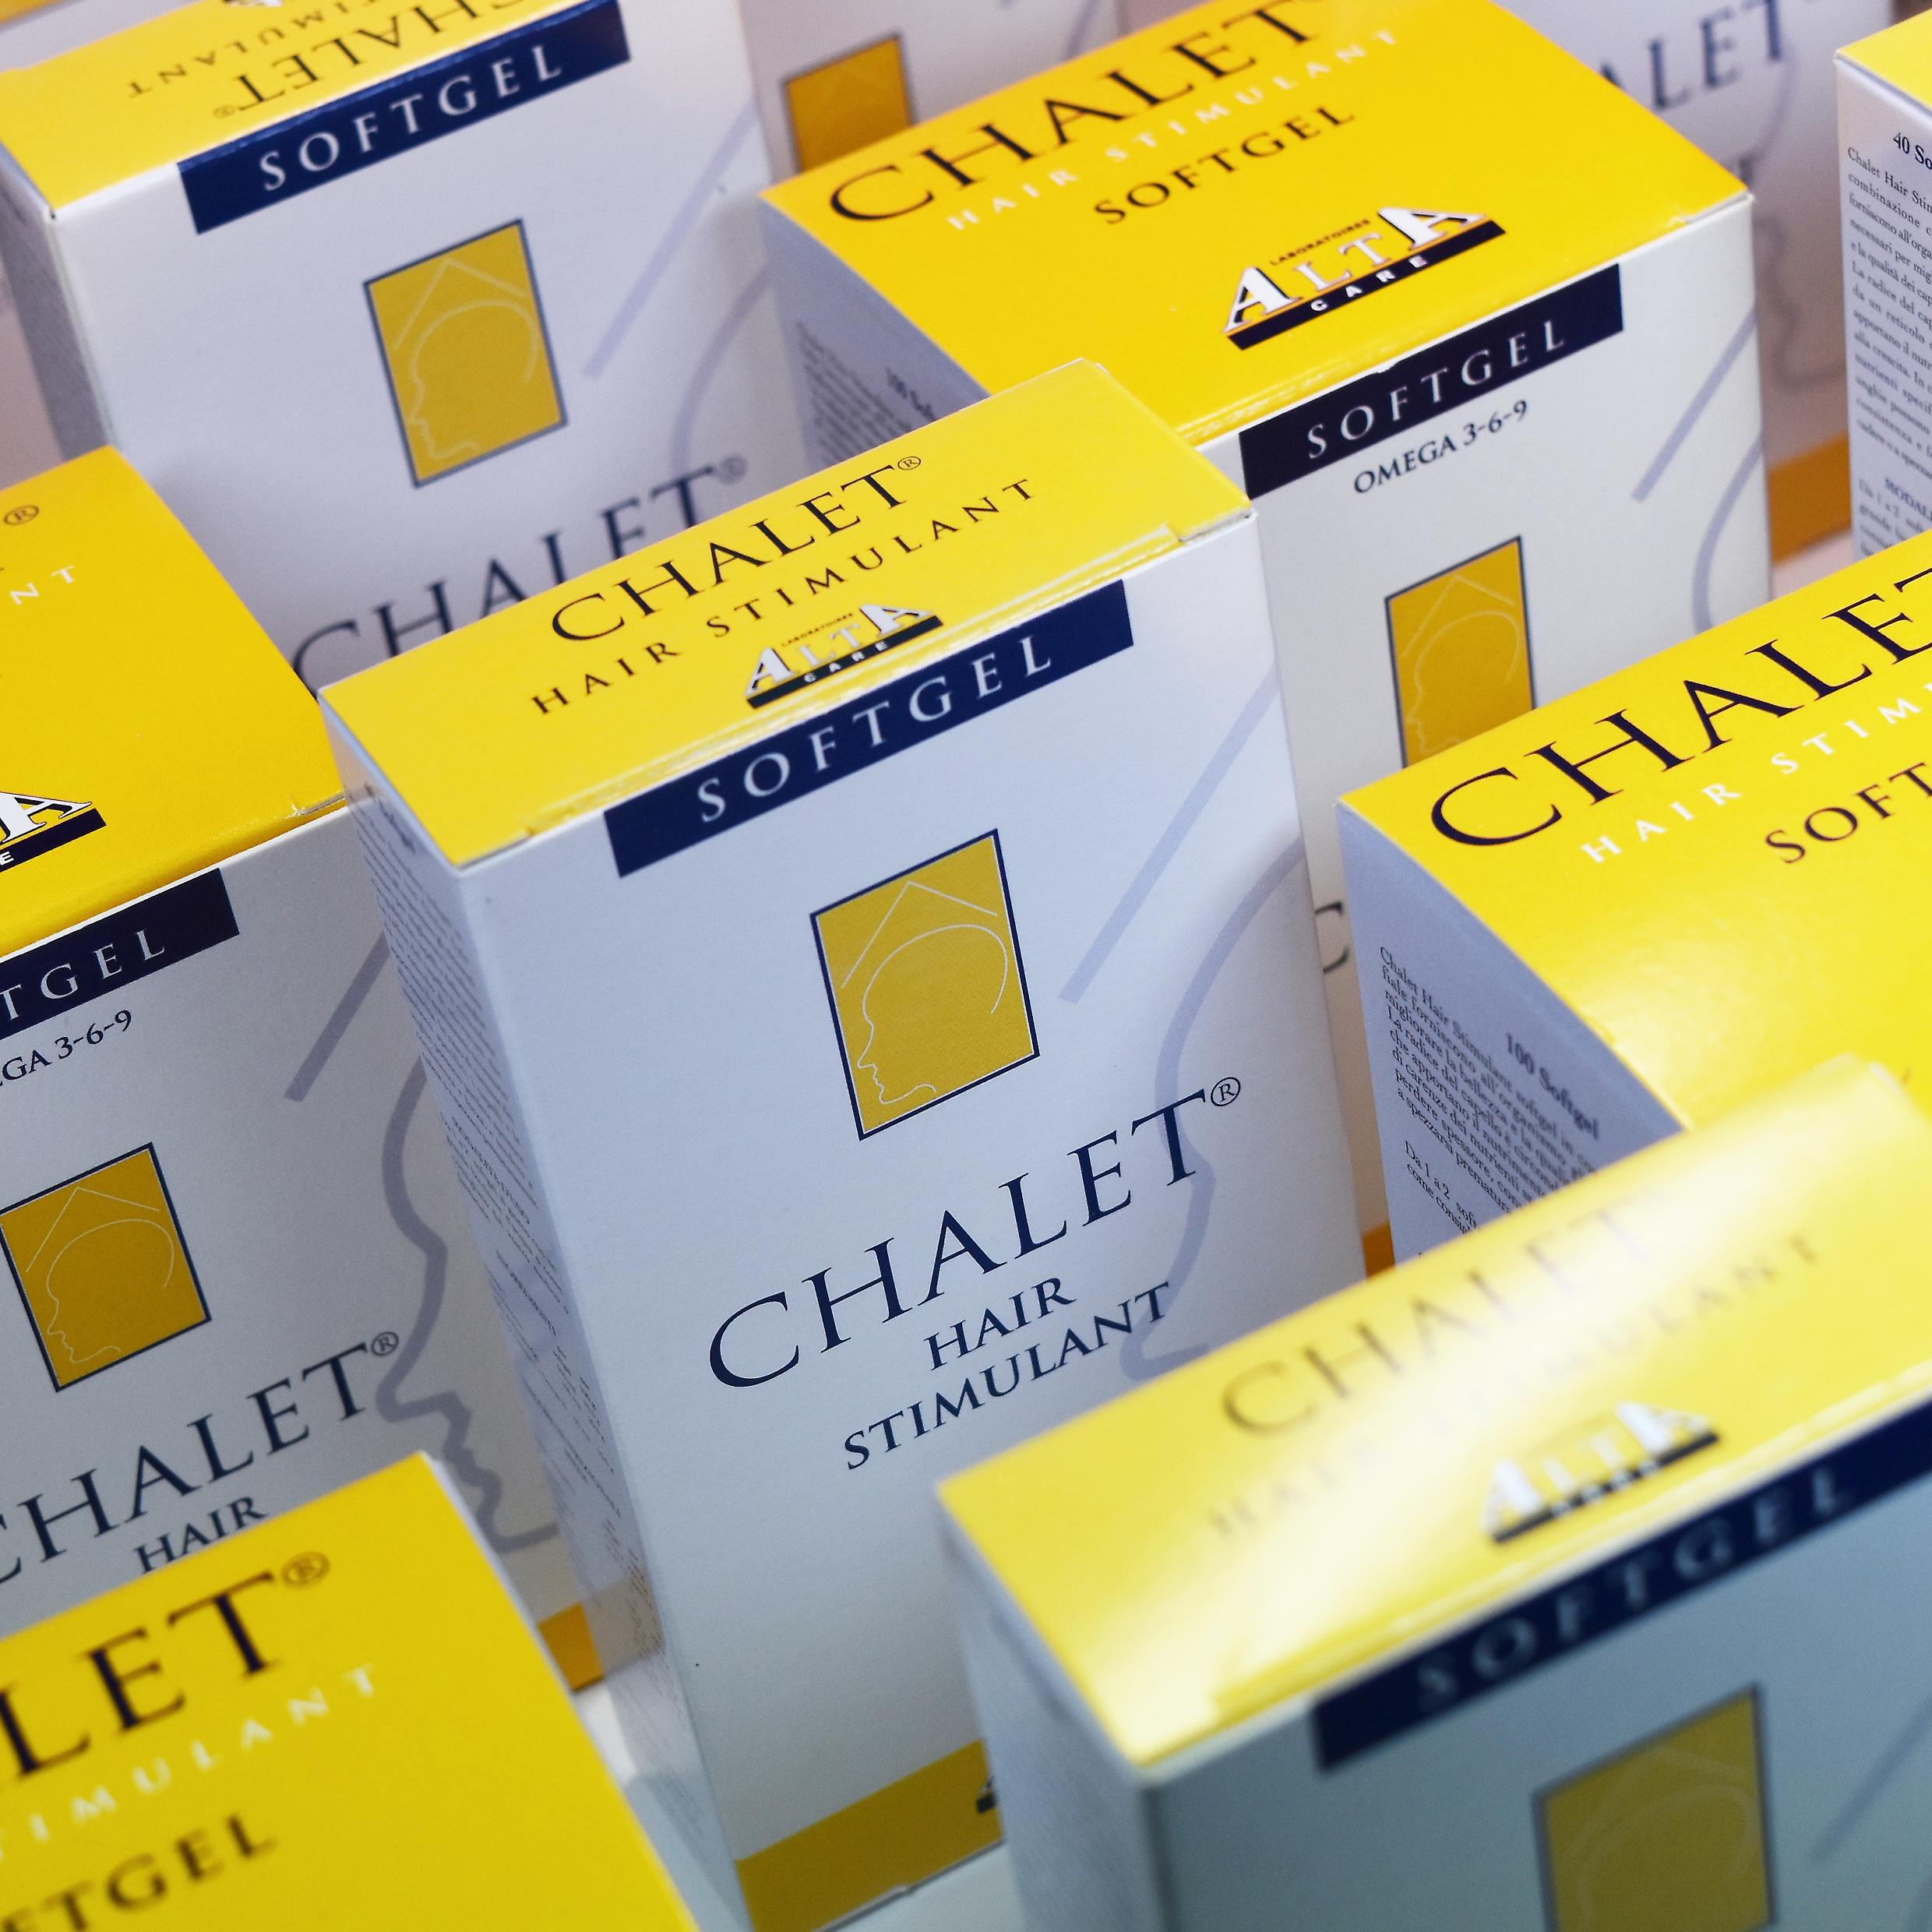 Chalet Hair Stimulant Softgels